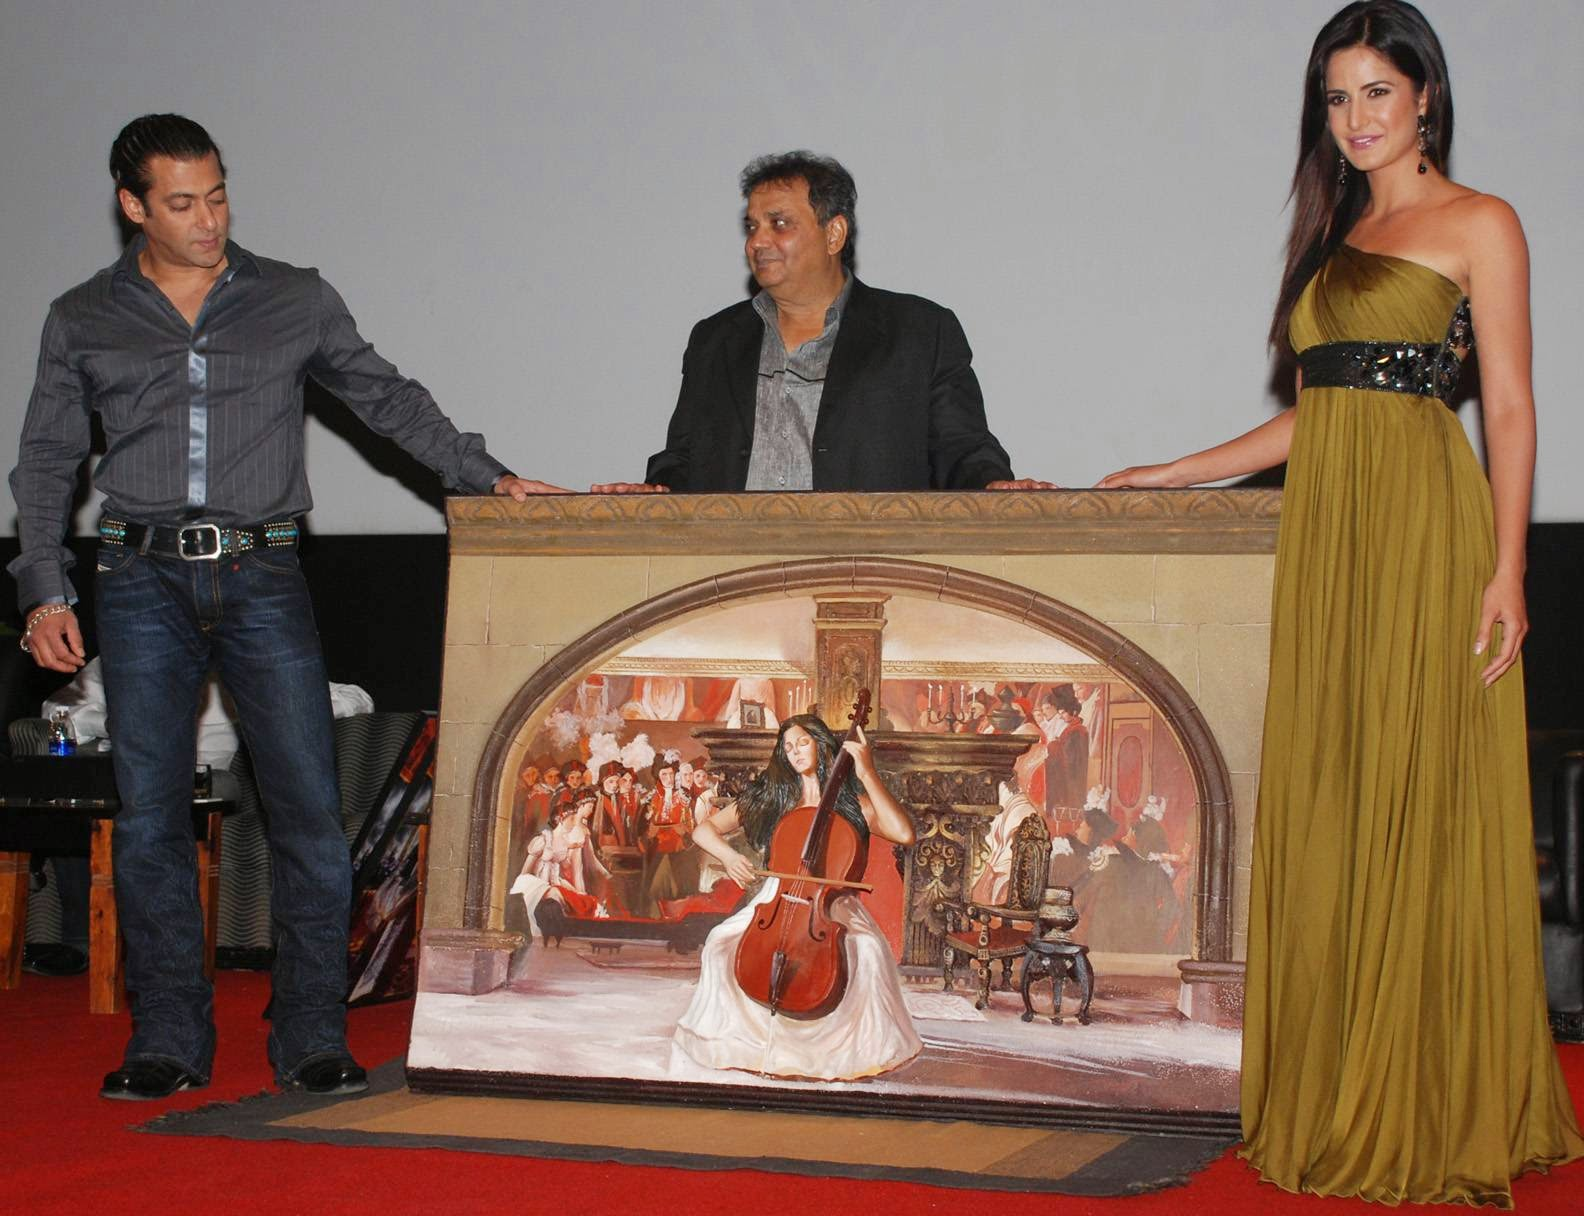 SUBHASH GHAI BHUSHAN KUMAR TOAST TO YUVVRAJ'S MUSICAL SUCCESS